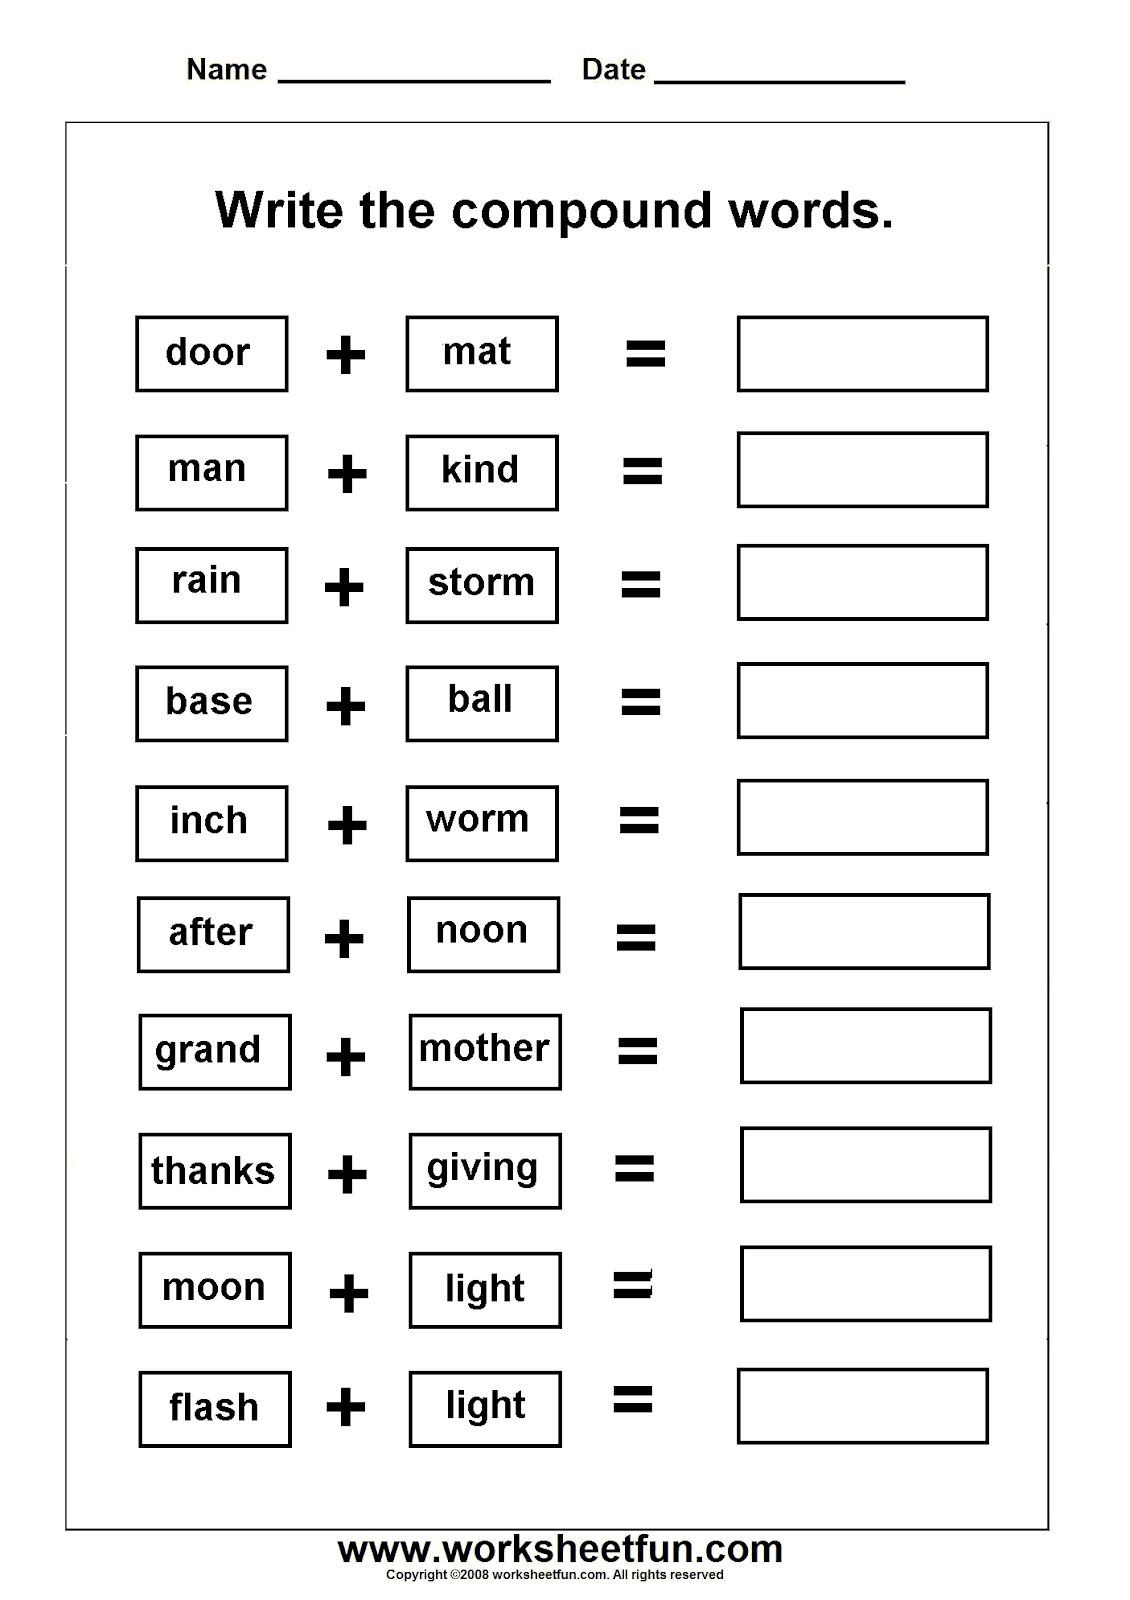 Compound Words Worksheets 1st Grade Pound Words Worksheets